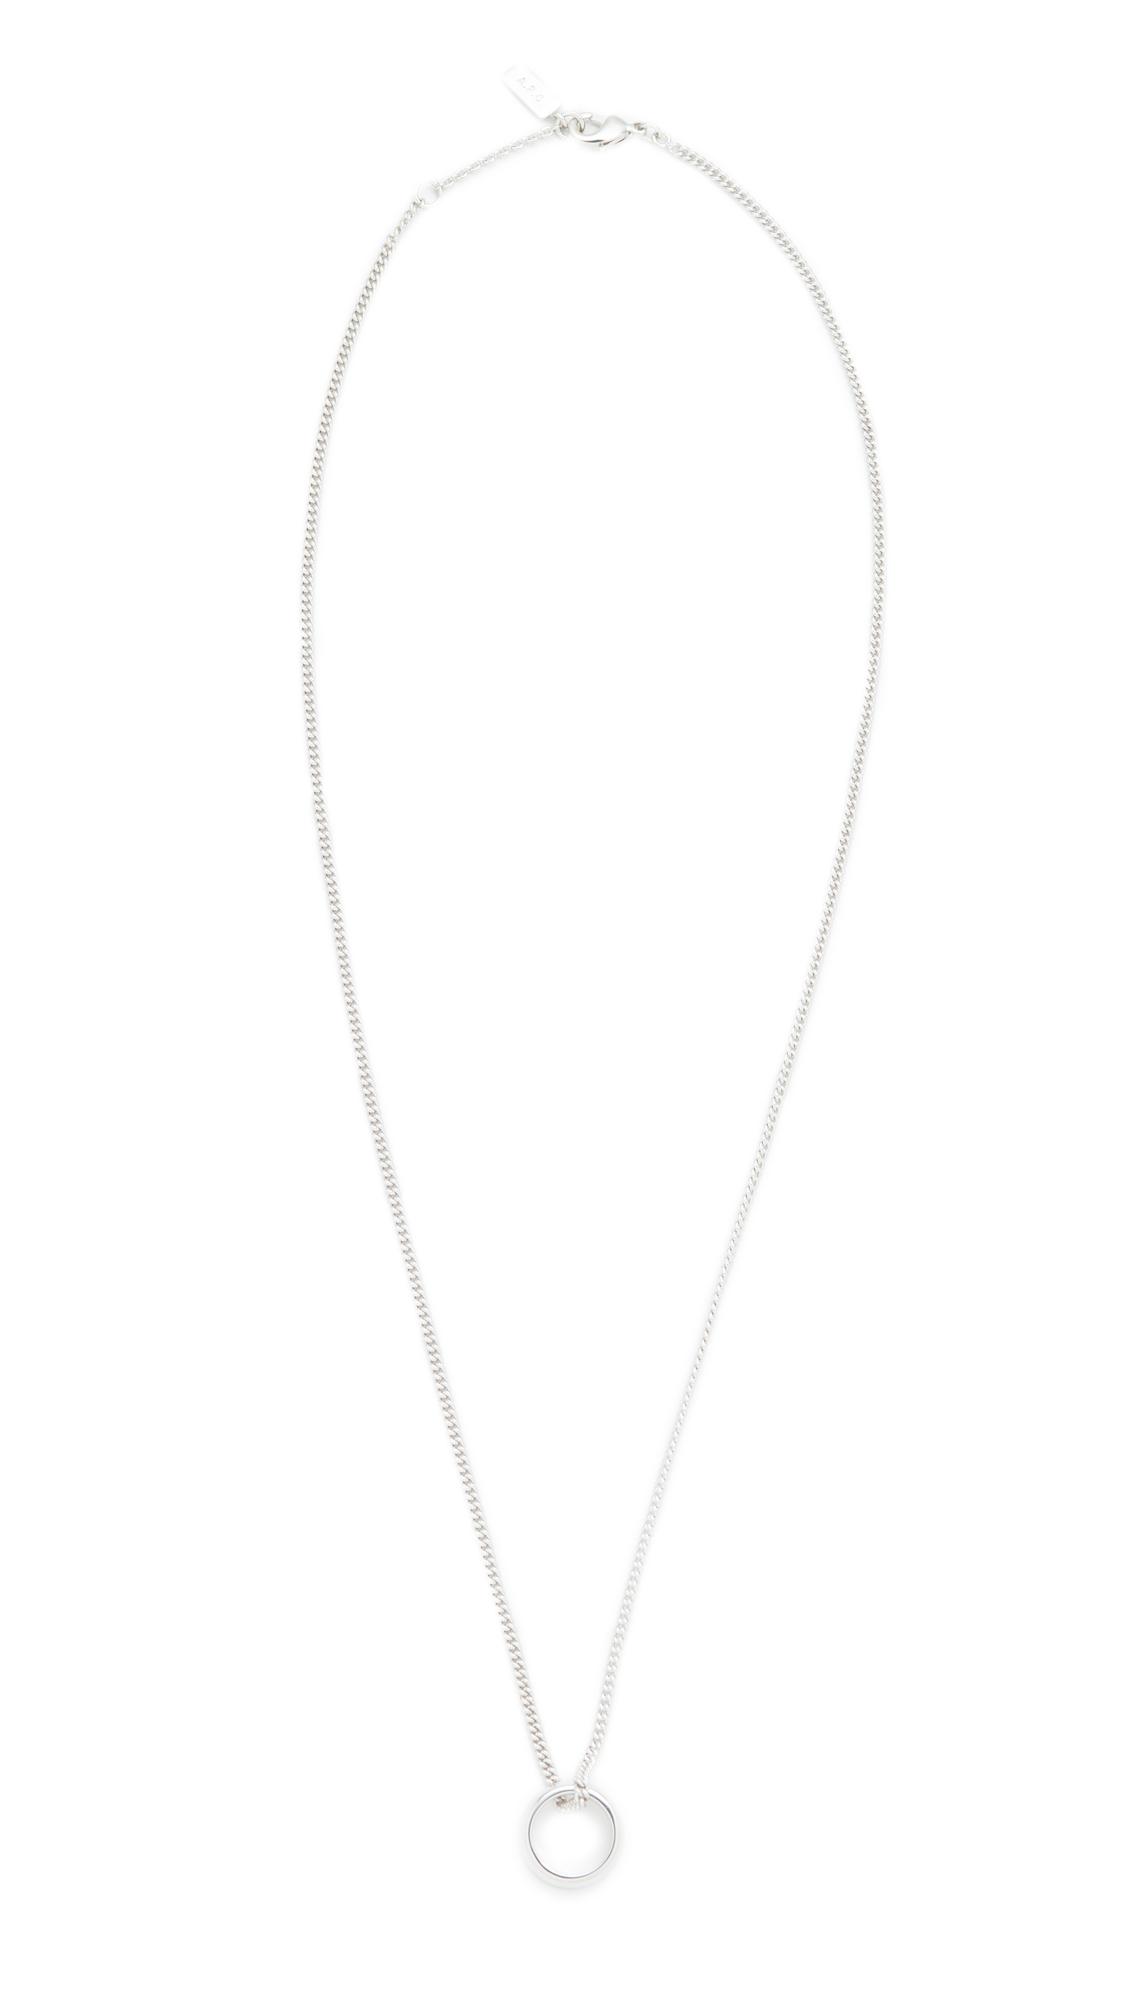 c lyst necklace money metallic a jewelry product apc gallery p in normal